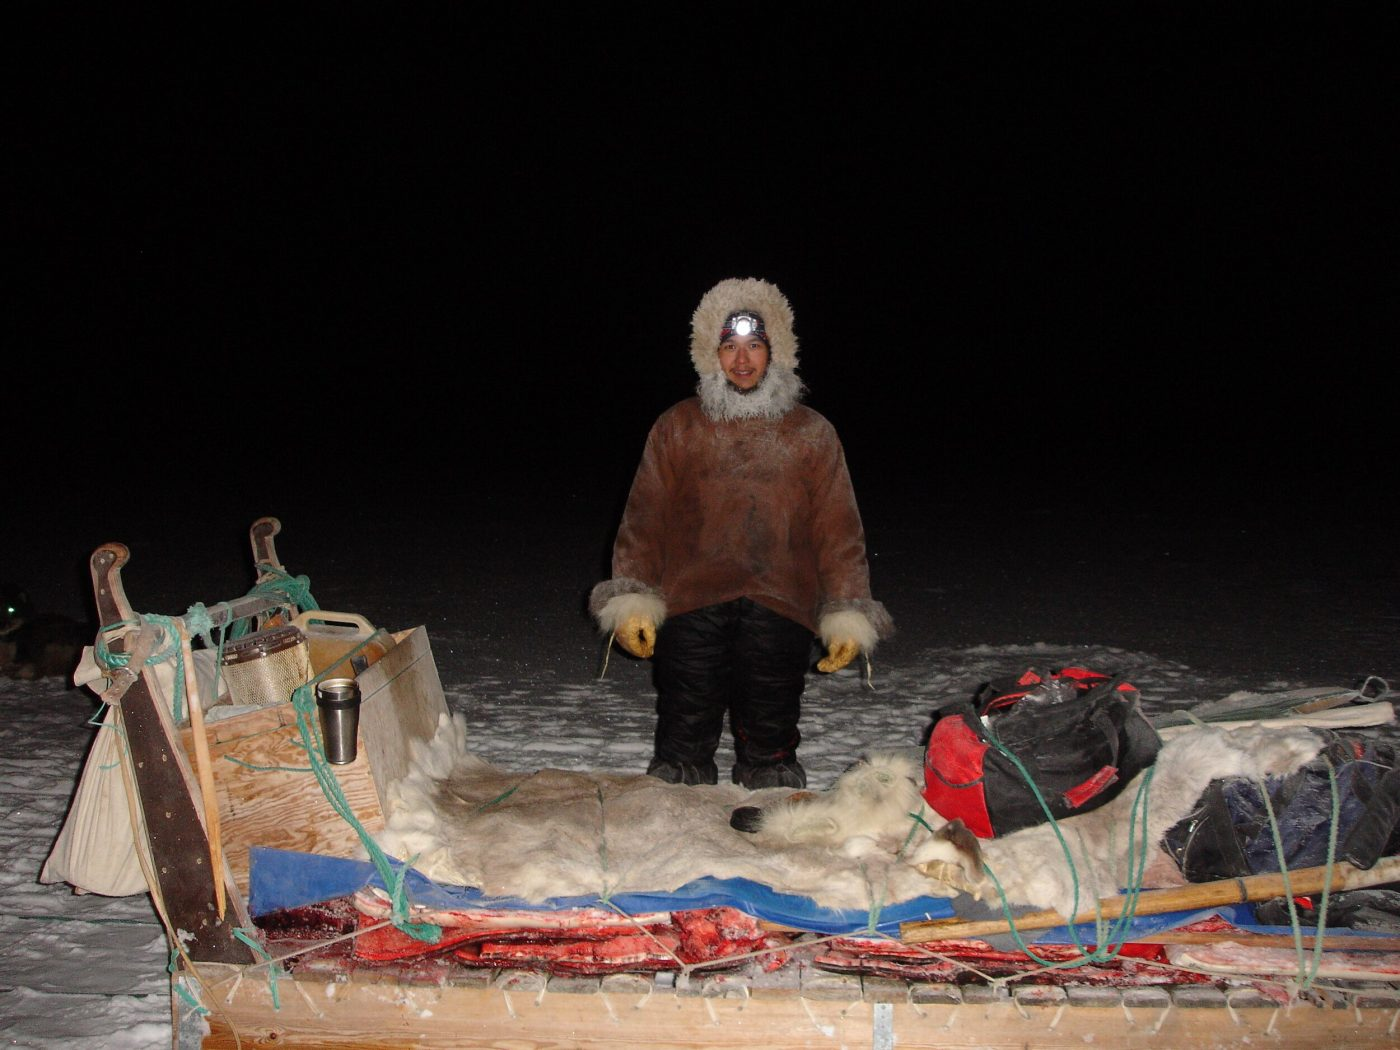 Happy hunter in fur anorak with catch of the day attached to his sleigh in Qaanaaq, North Greenland. Photo by Nunataq Atsuk Travel